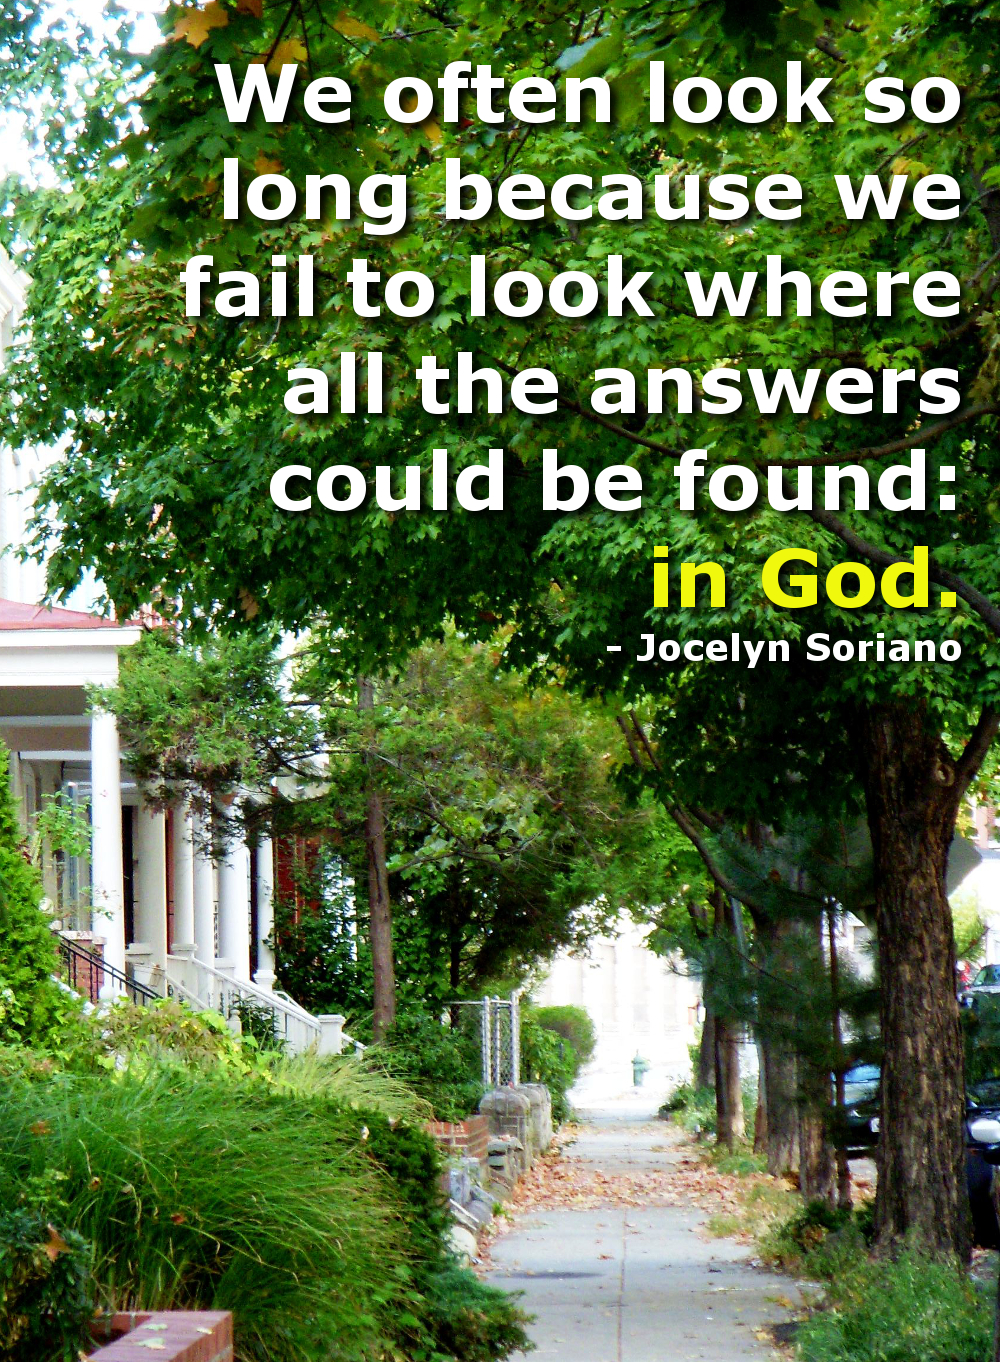 Find The Answers in God